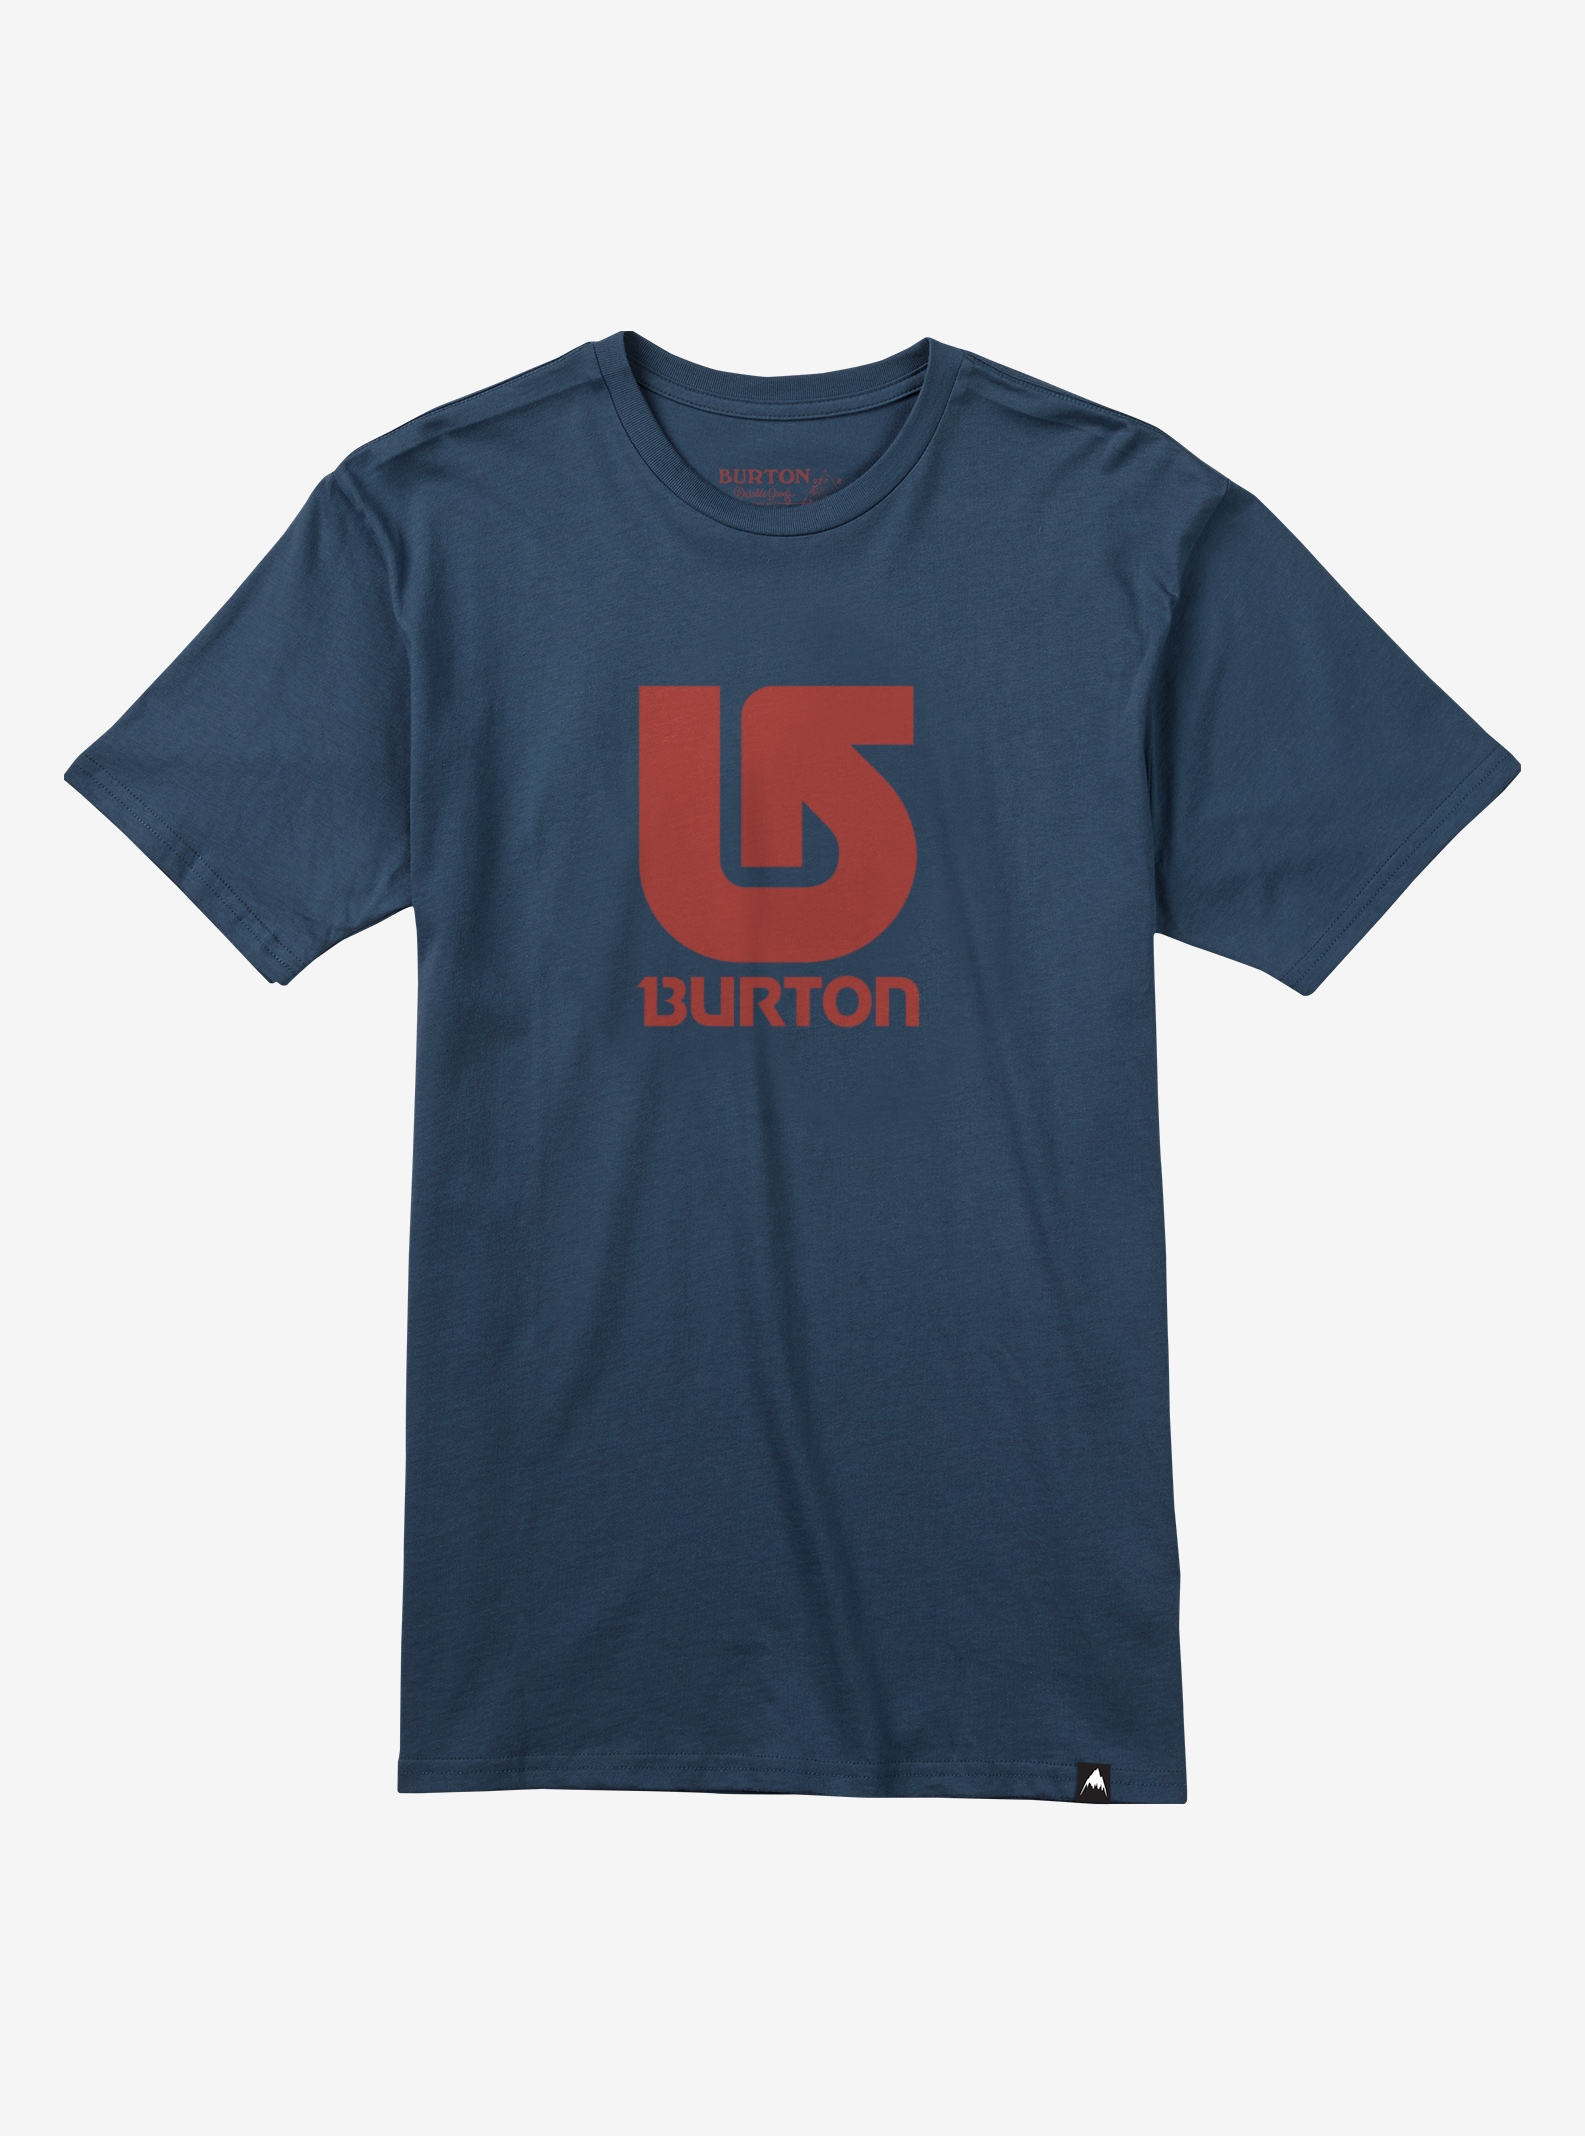 Burton Logo Vertical Slim Fit Short Sleeve T Shirt shown in Indigo